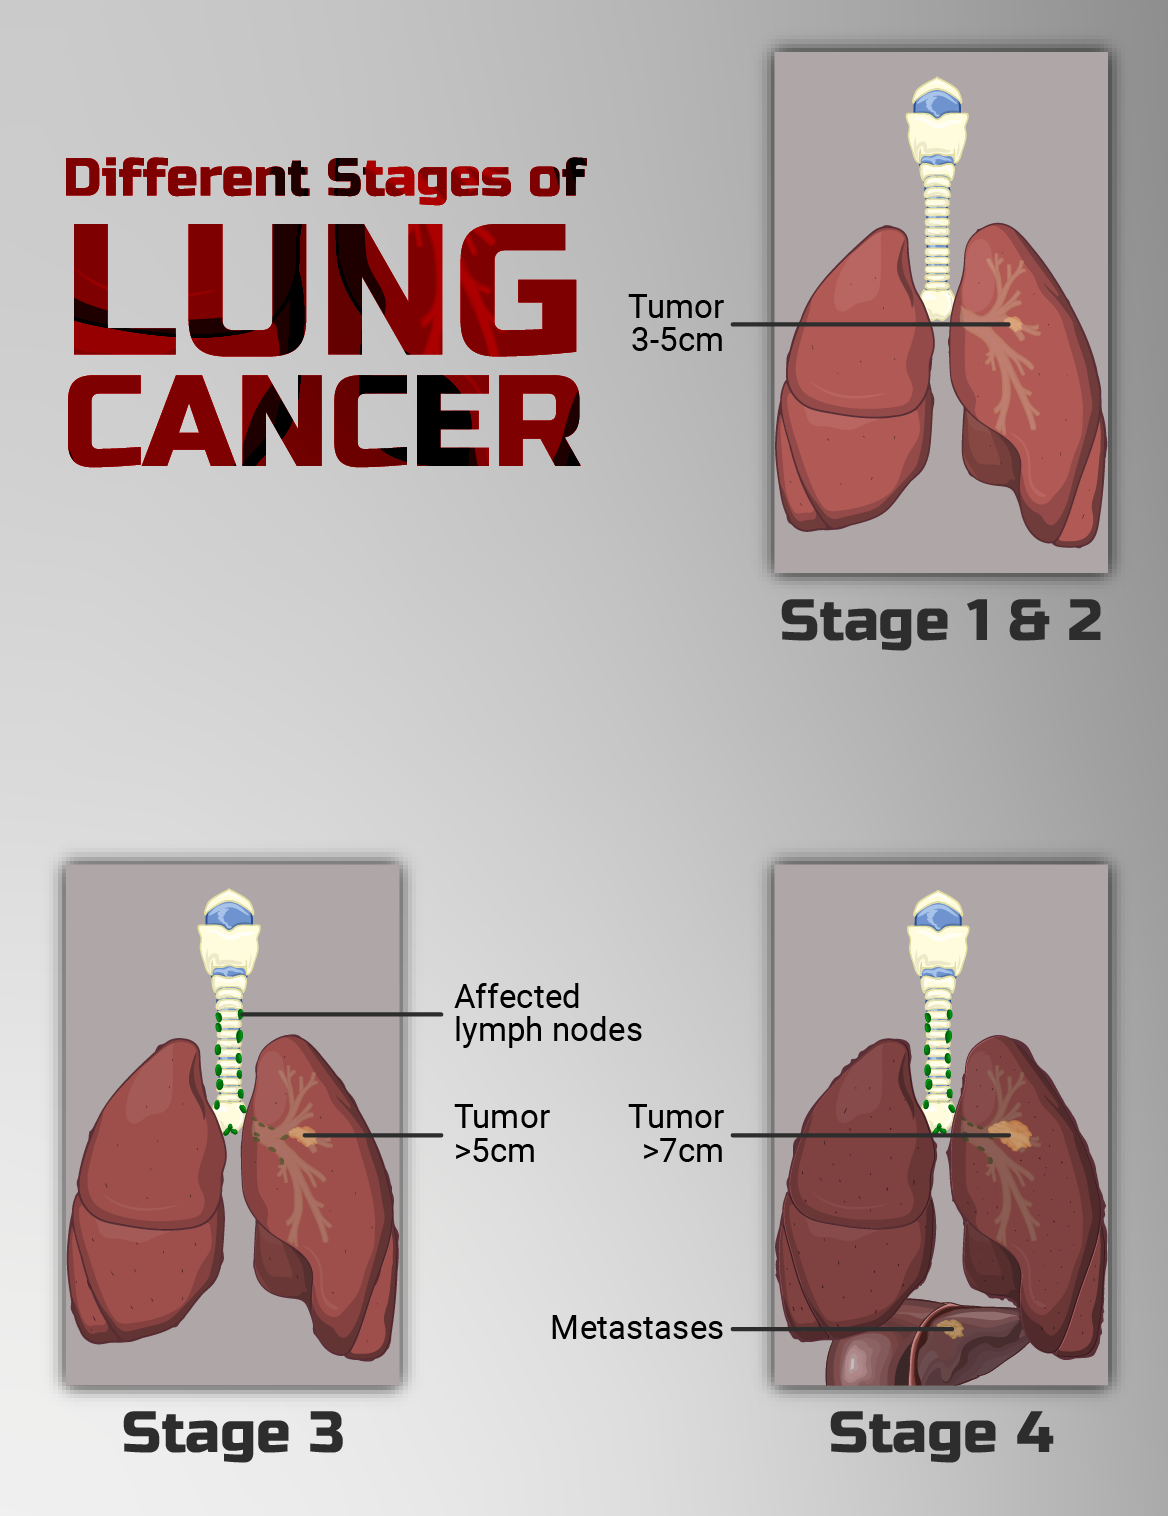 Why Is Lung Cancer So Difficult to Treat? Surgeon Answers